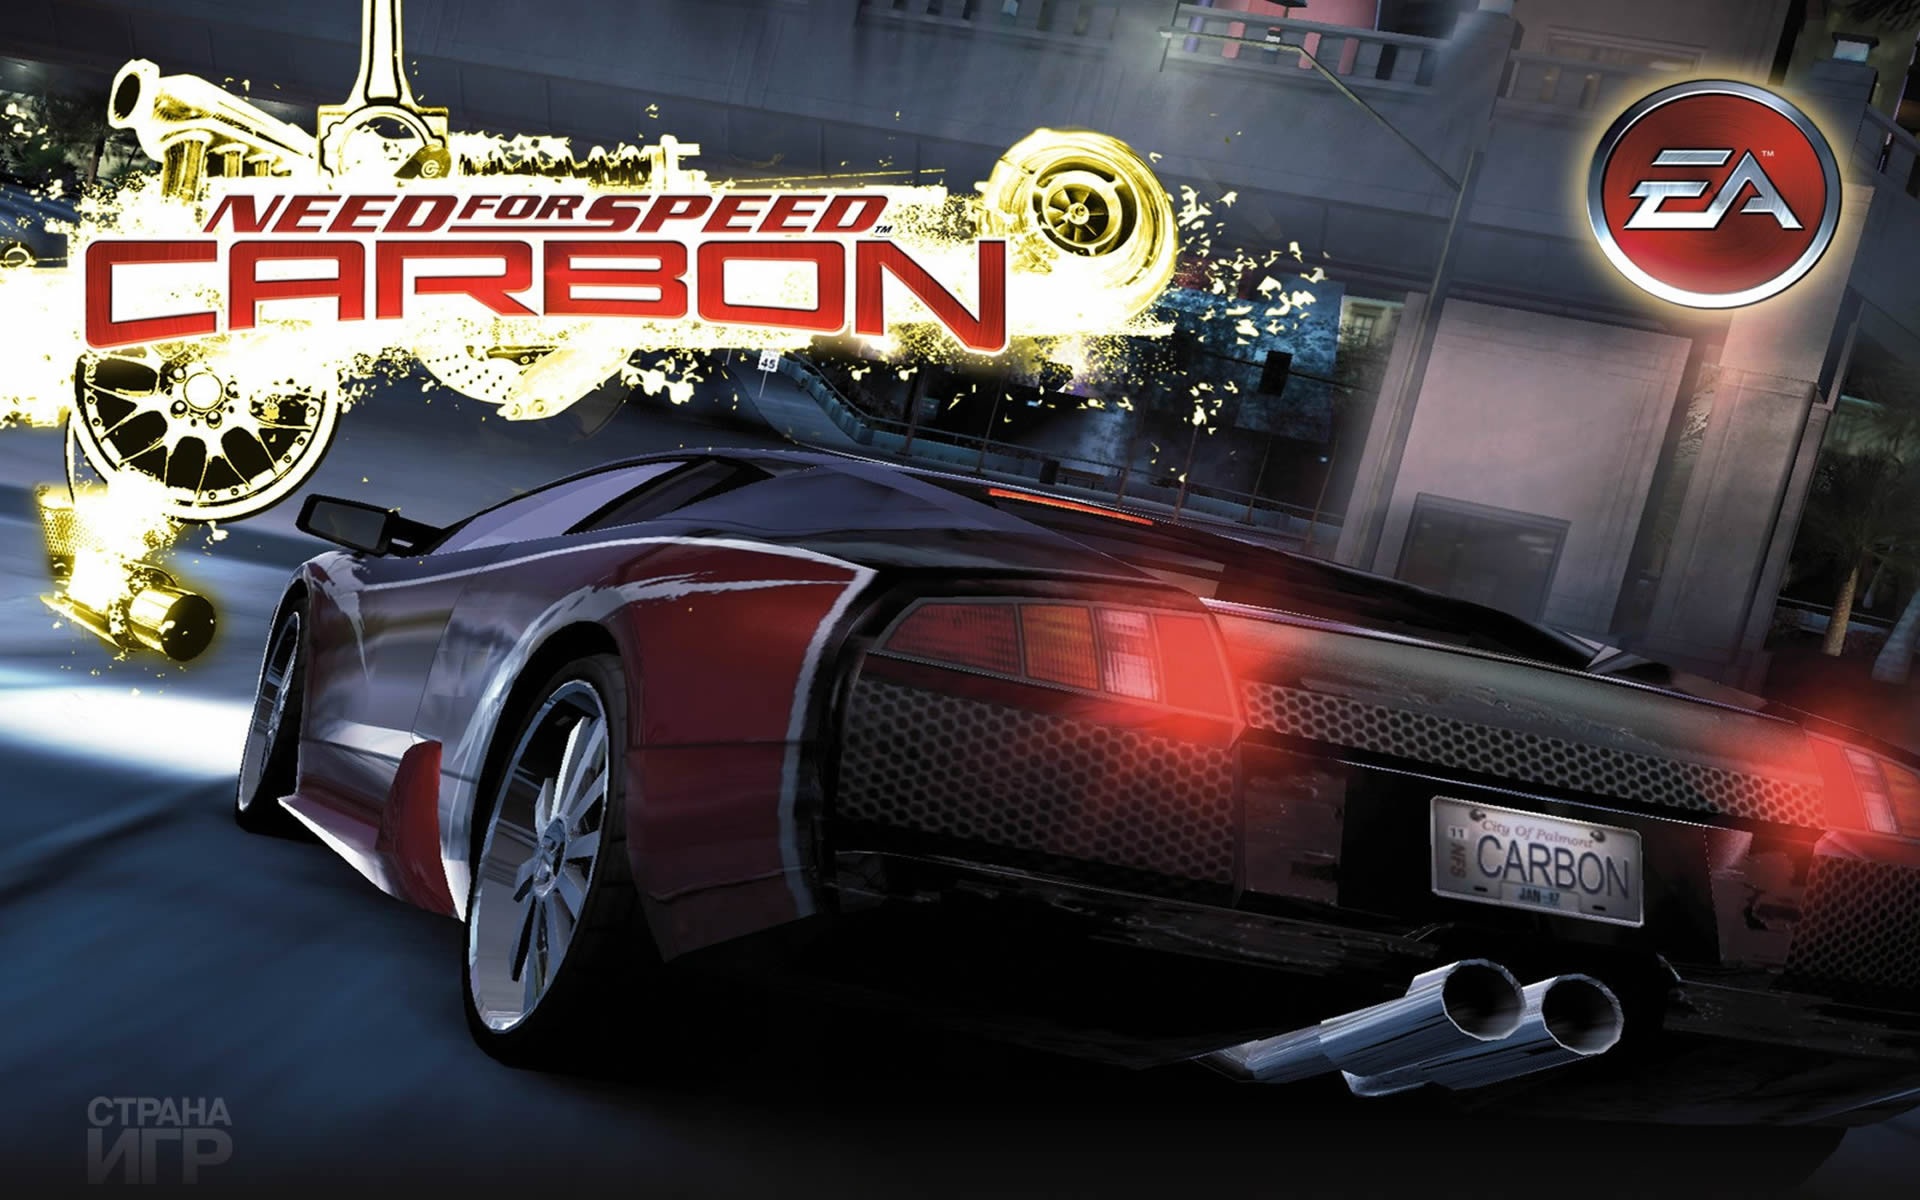 Nfs Carbon 1 Need For Speed Carbon Wallpaper